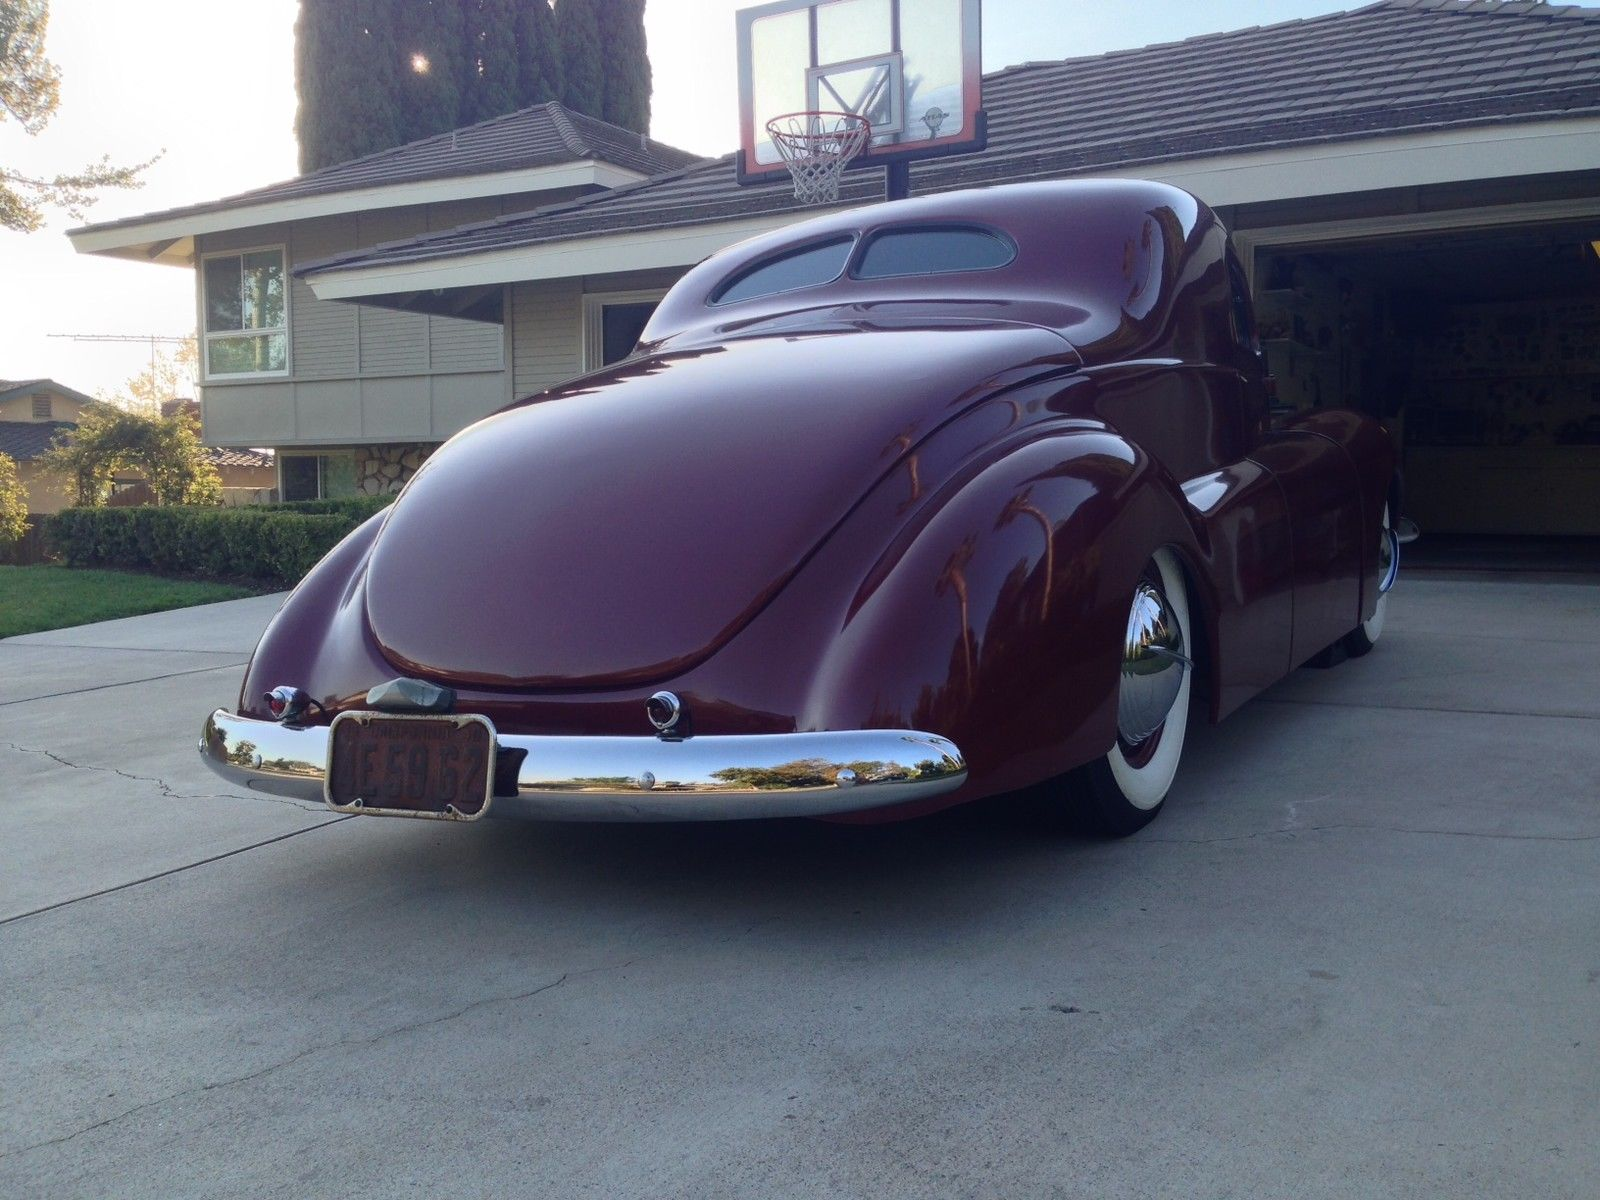 1940 Ford Coupe Early So Cal Custom Car Built In 1943 The Bob 1957 Chevy Bel.  Ford Fuse Box Location ...